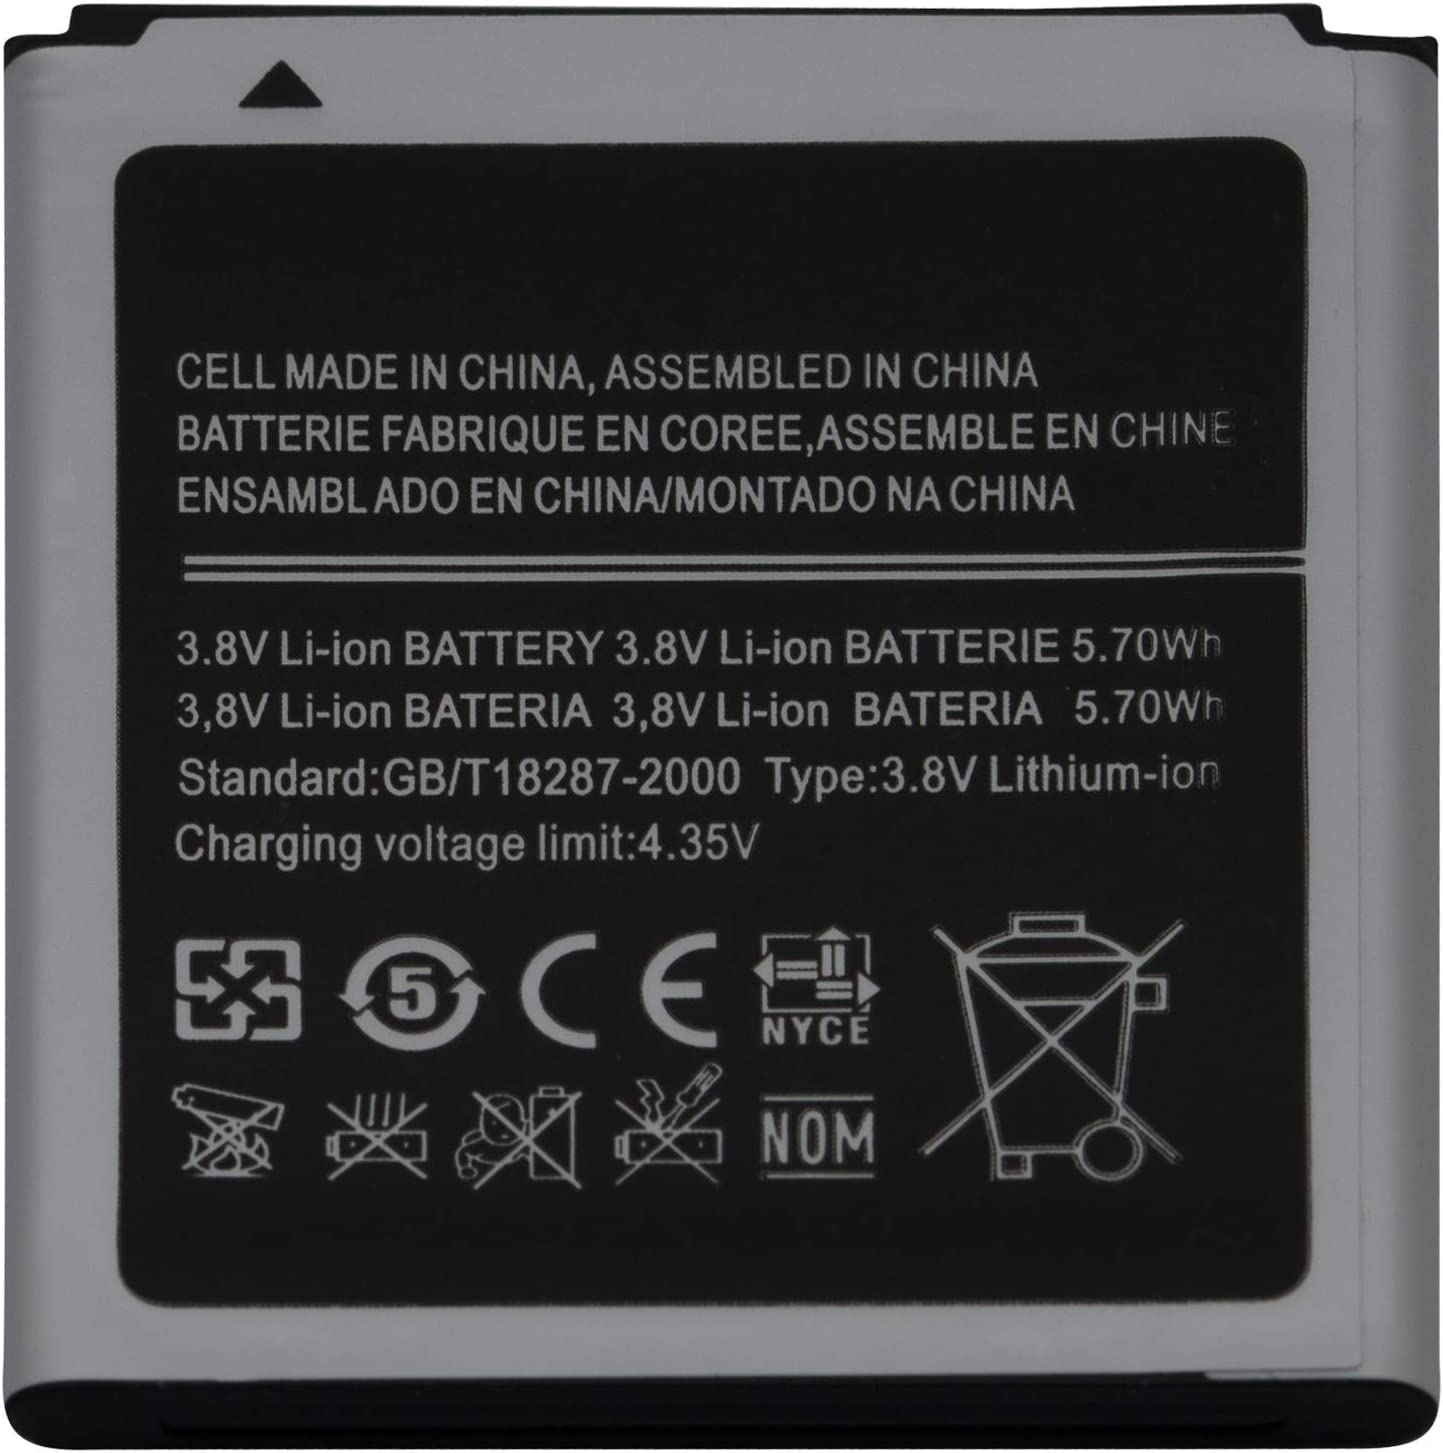 1500mAh Capacity Lithium-ion Battery EB425161LU Fits for Samsung Galaxy Ace II